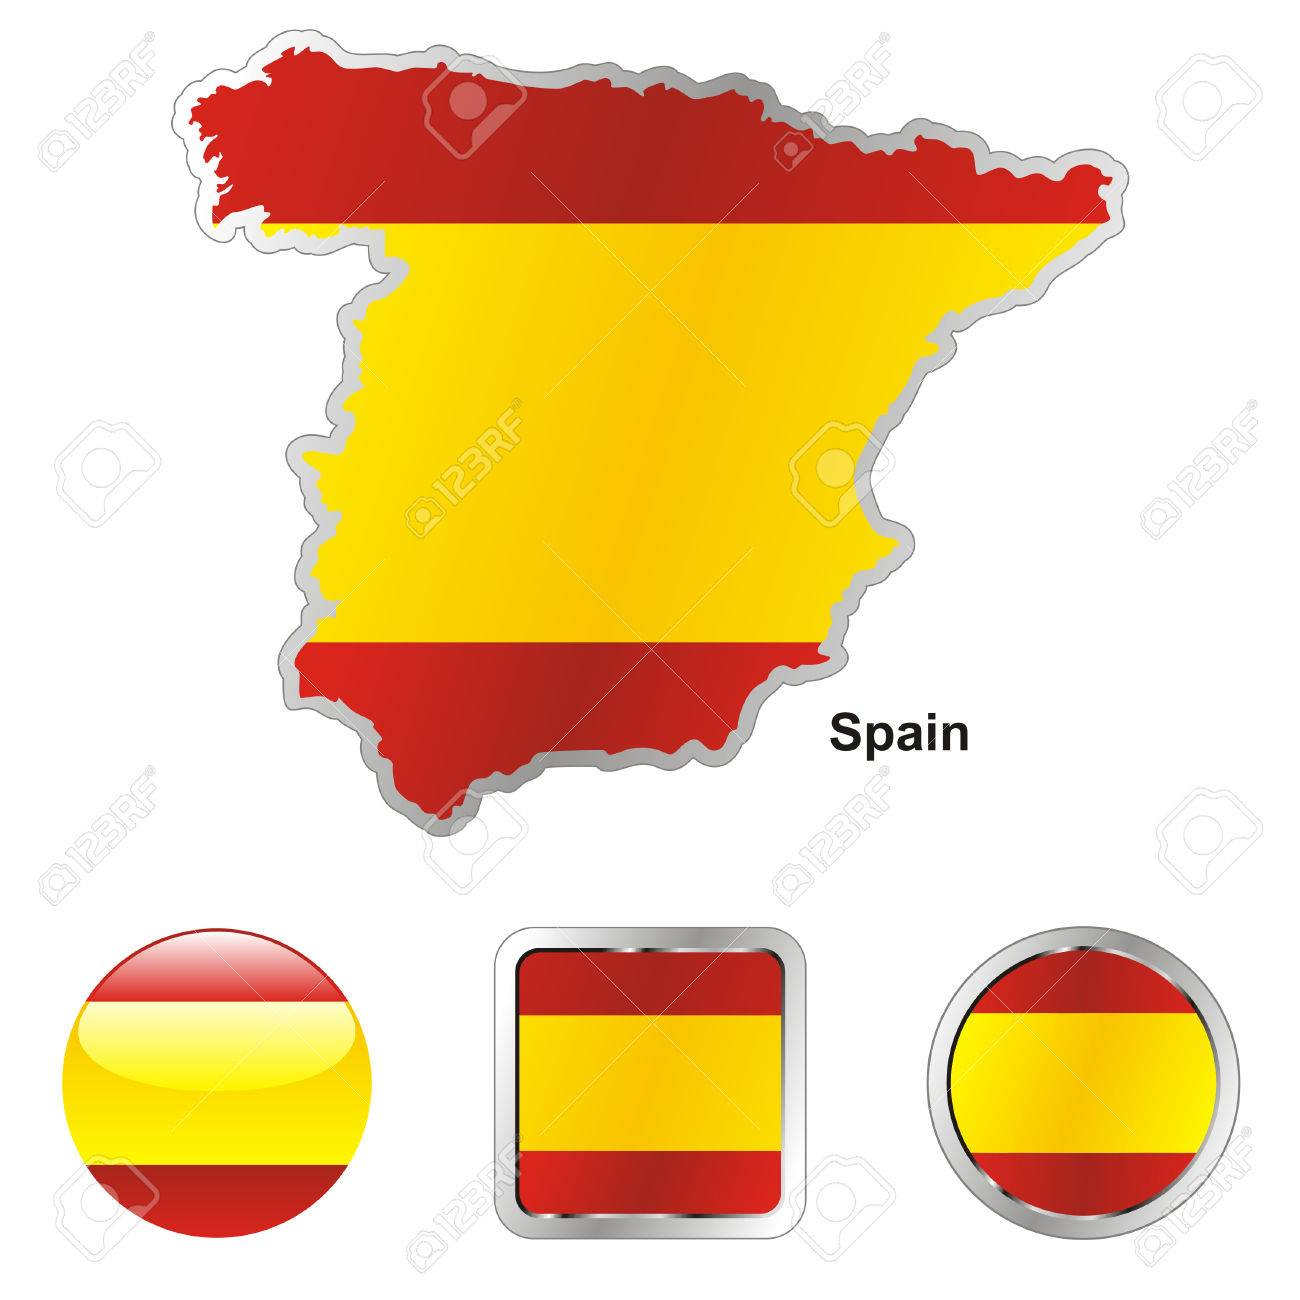 fully editable flag of spain in map and web buttons shapes Stock Vector - 6255923